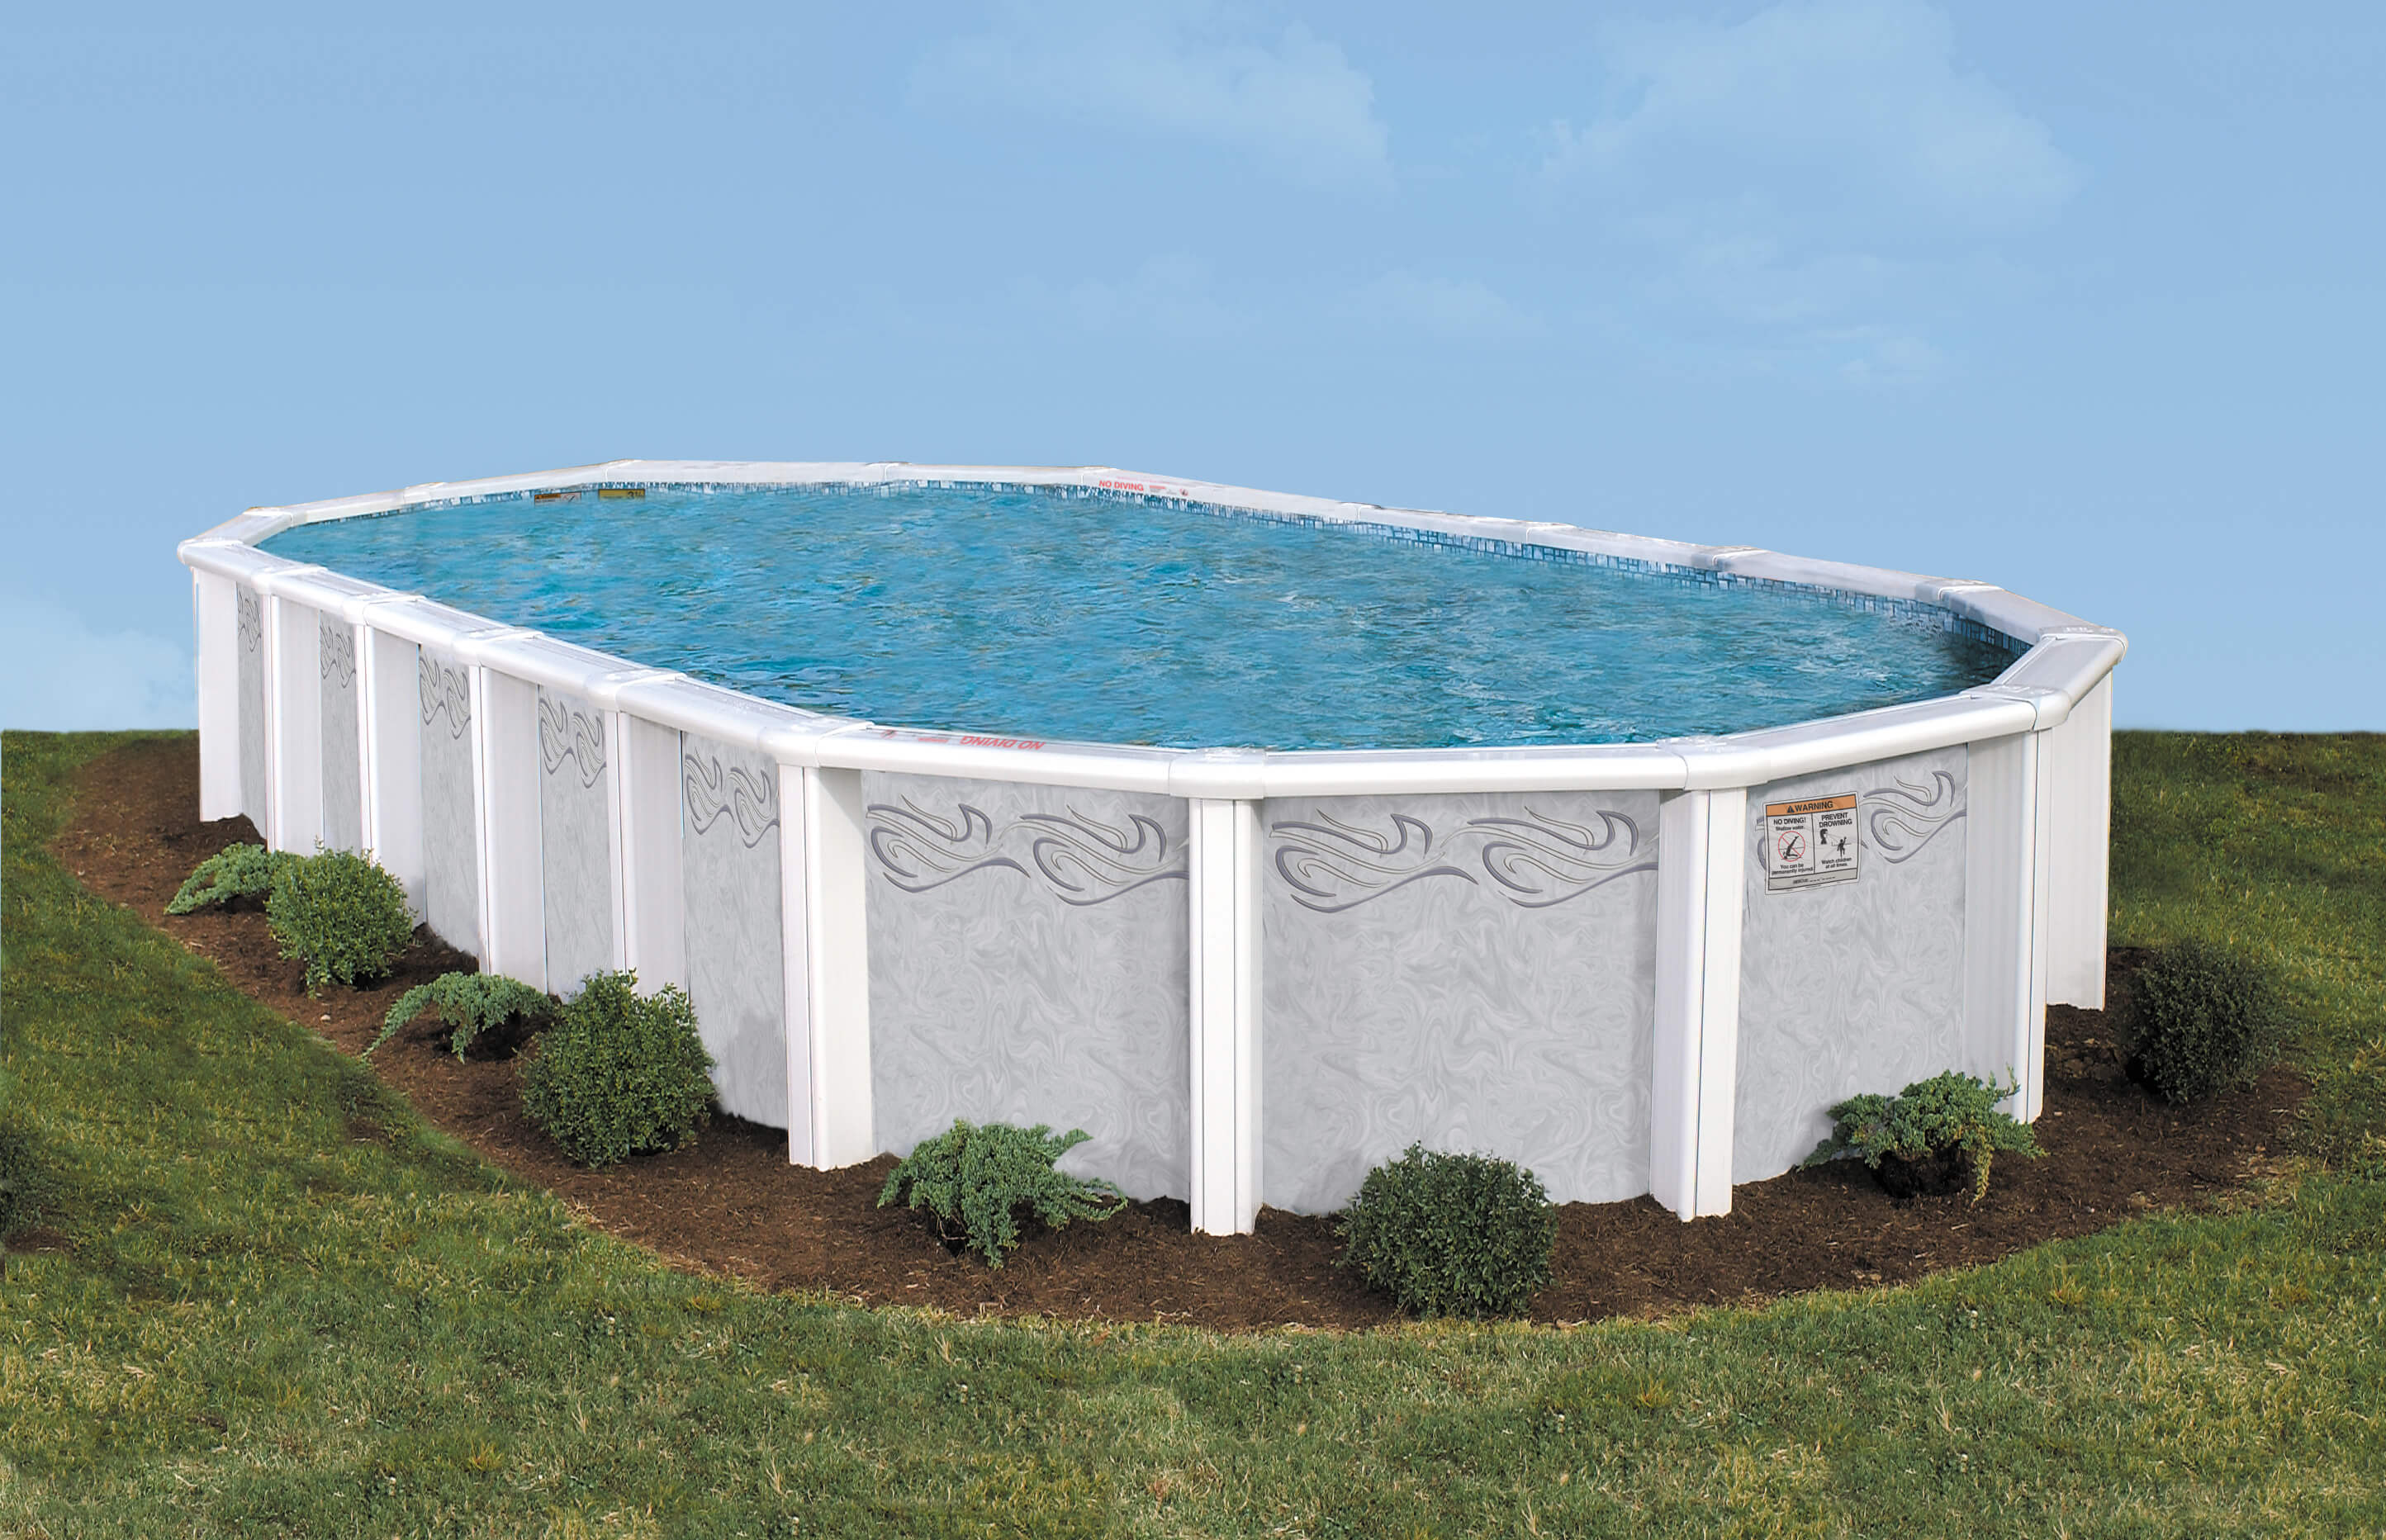 This Is A Photo Of The Saratoga Above Ground Swimming Pool.